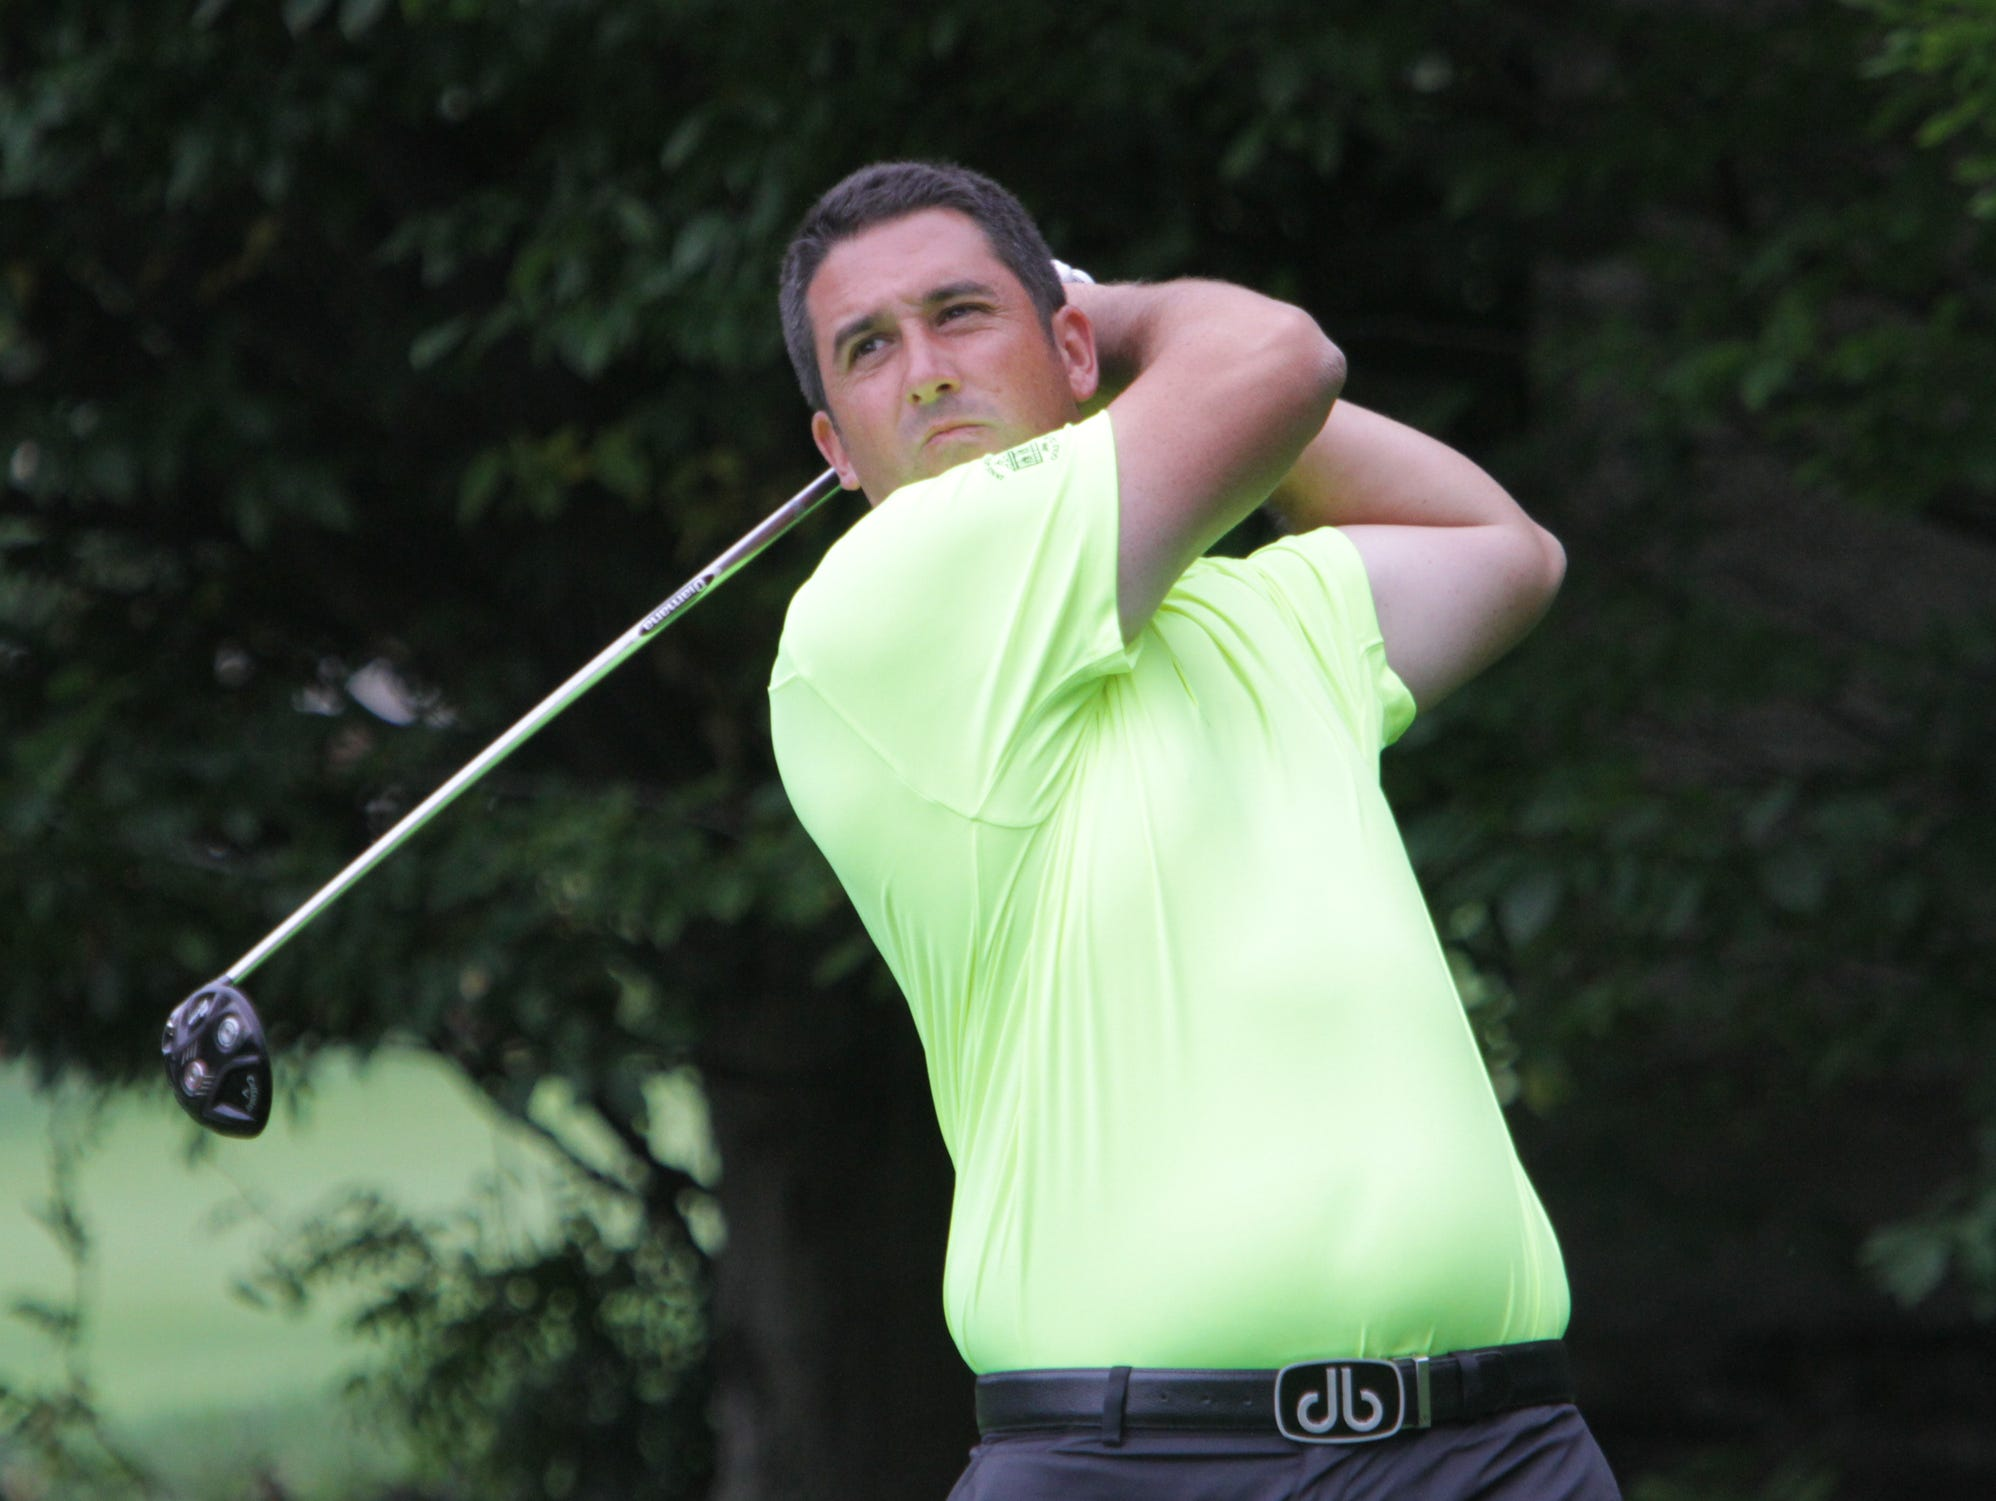 Anthony Casalino tees from the first hole during the second round of the Met PGA Championship at Fenway Golf Club Sept.30, 2015.